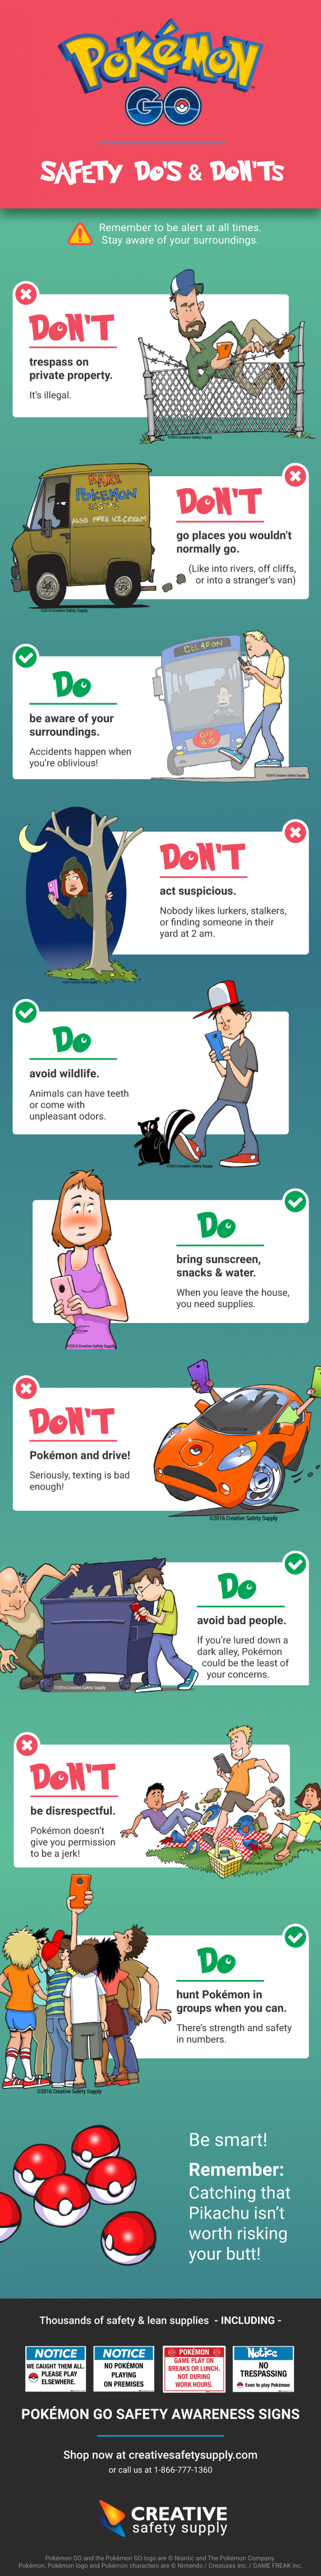 Pokémon GO: Safety Do's and Don'ts Infographic